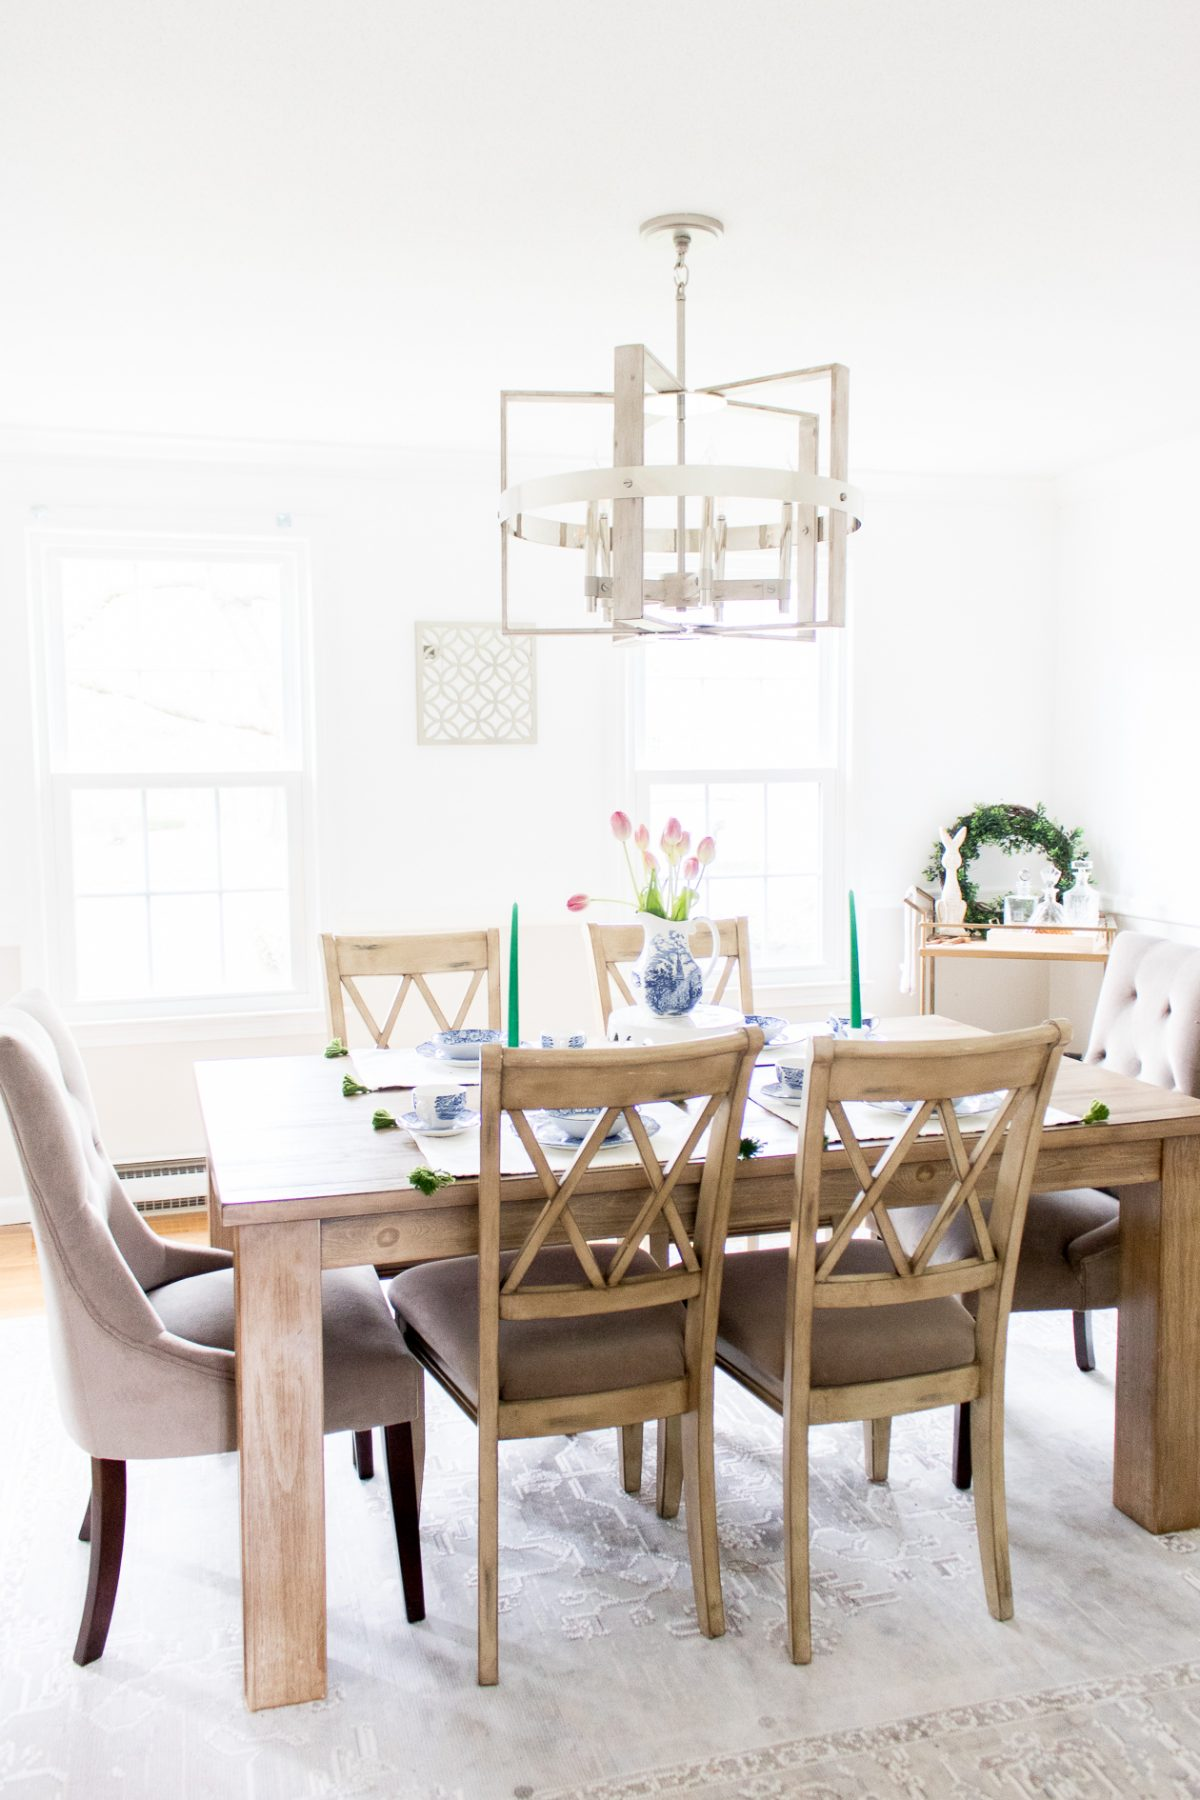 Peyton 5 Light Chandelier in White Washed Wood over dining room table set with blue china and tulip centerpiece